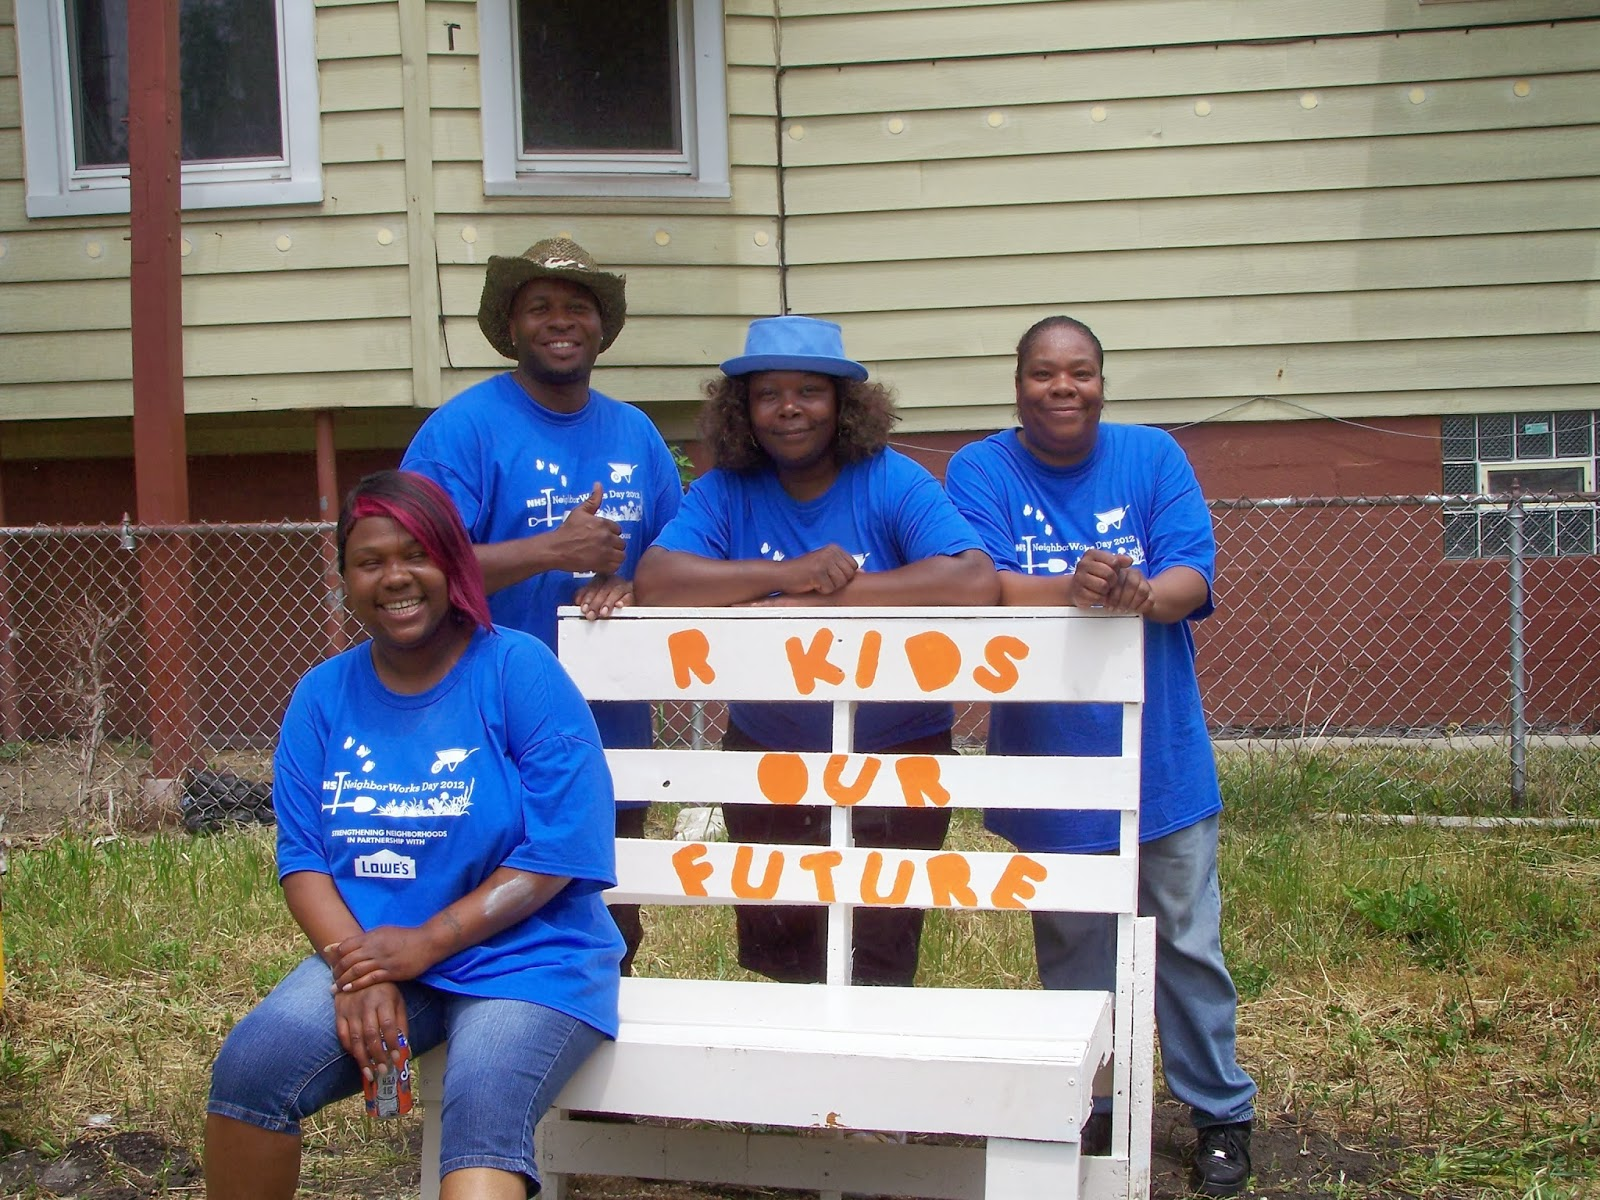 Members of one block club mobilized to improve conditions for children in their neighborhood.